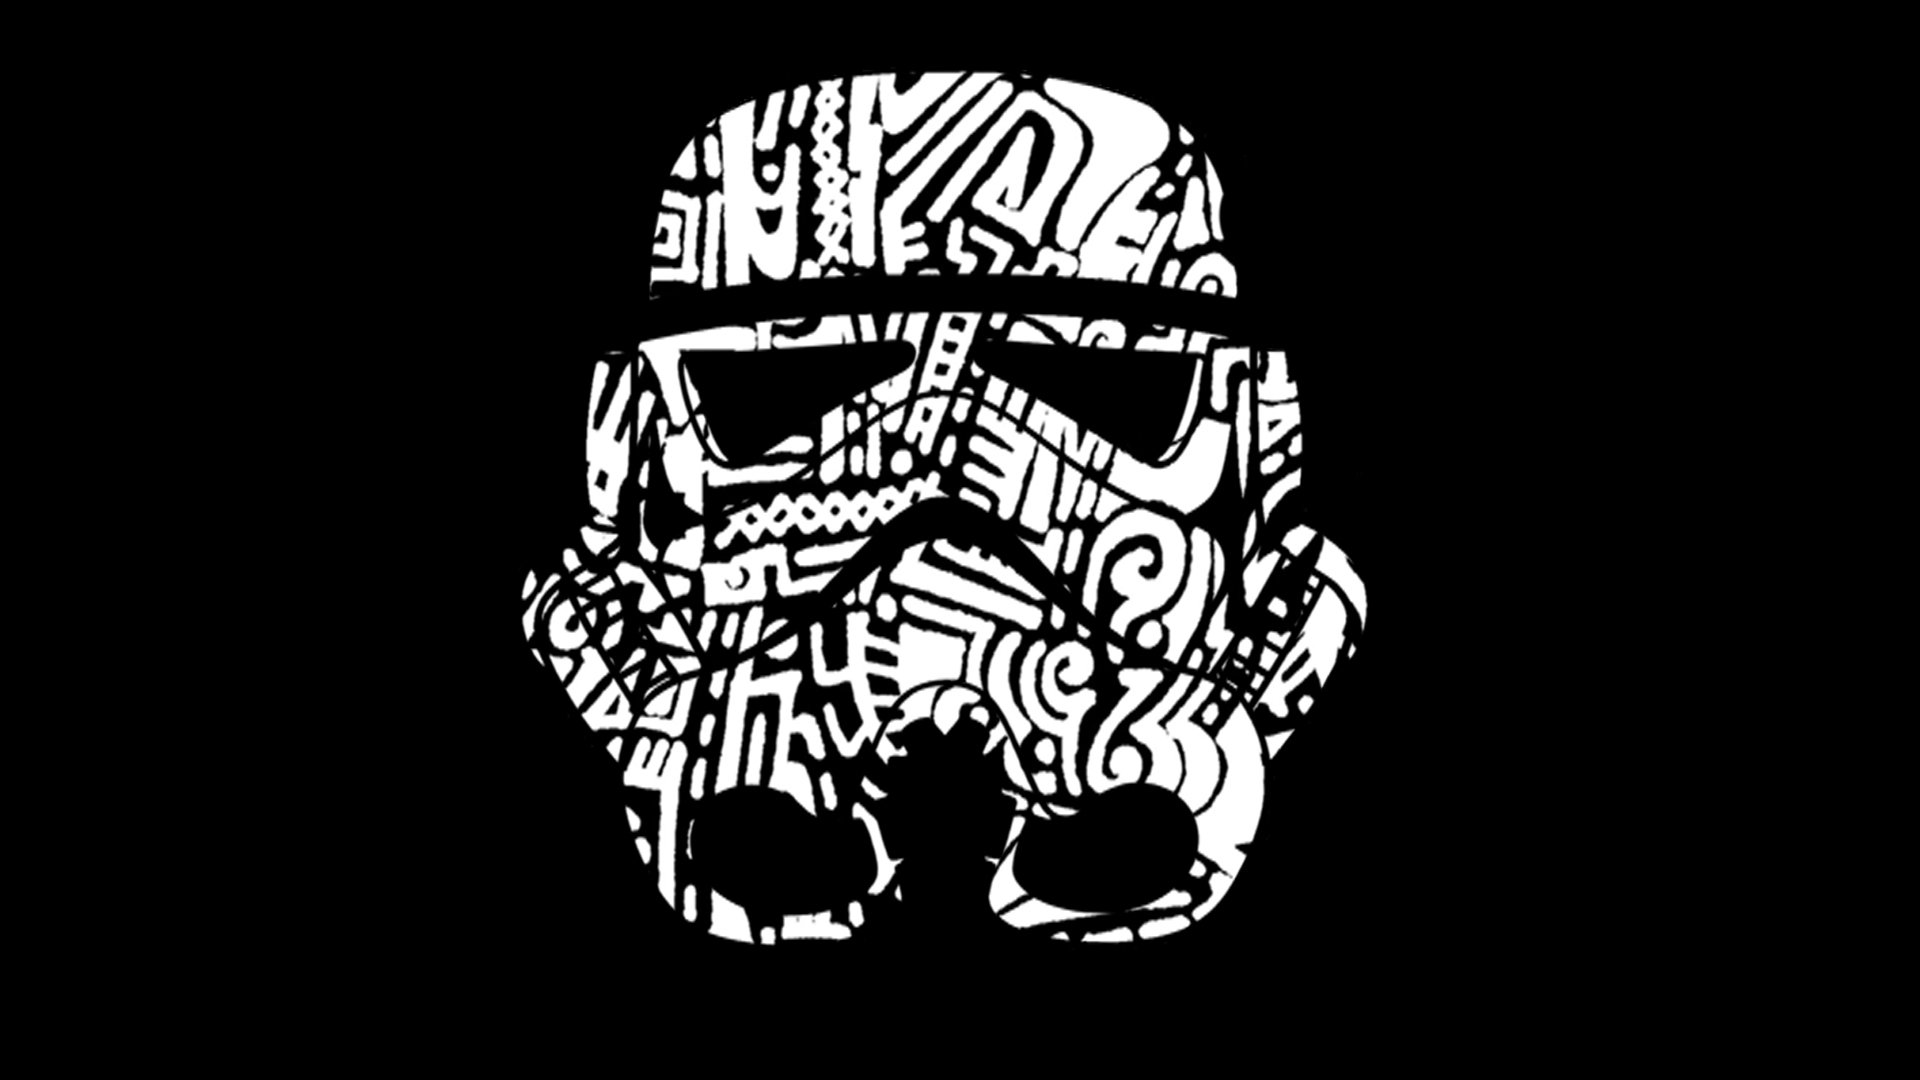 343 Stormtrooper Hd Wallpapers Background Images Wallpaper Abyss Page 11